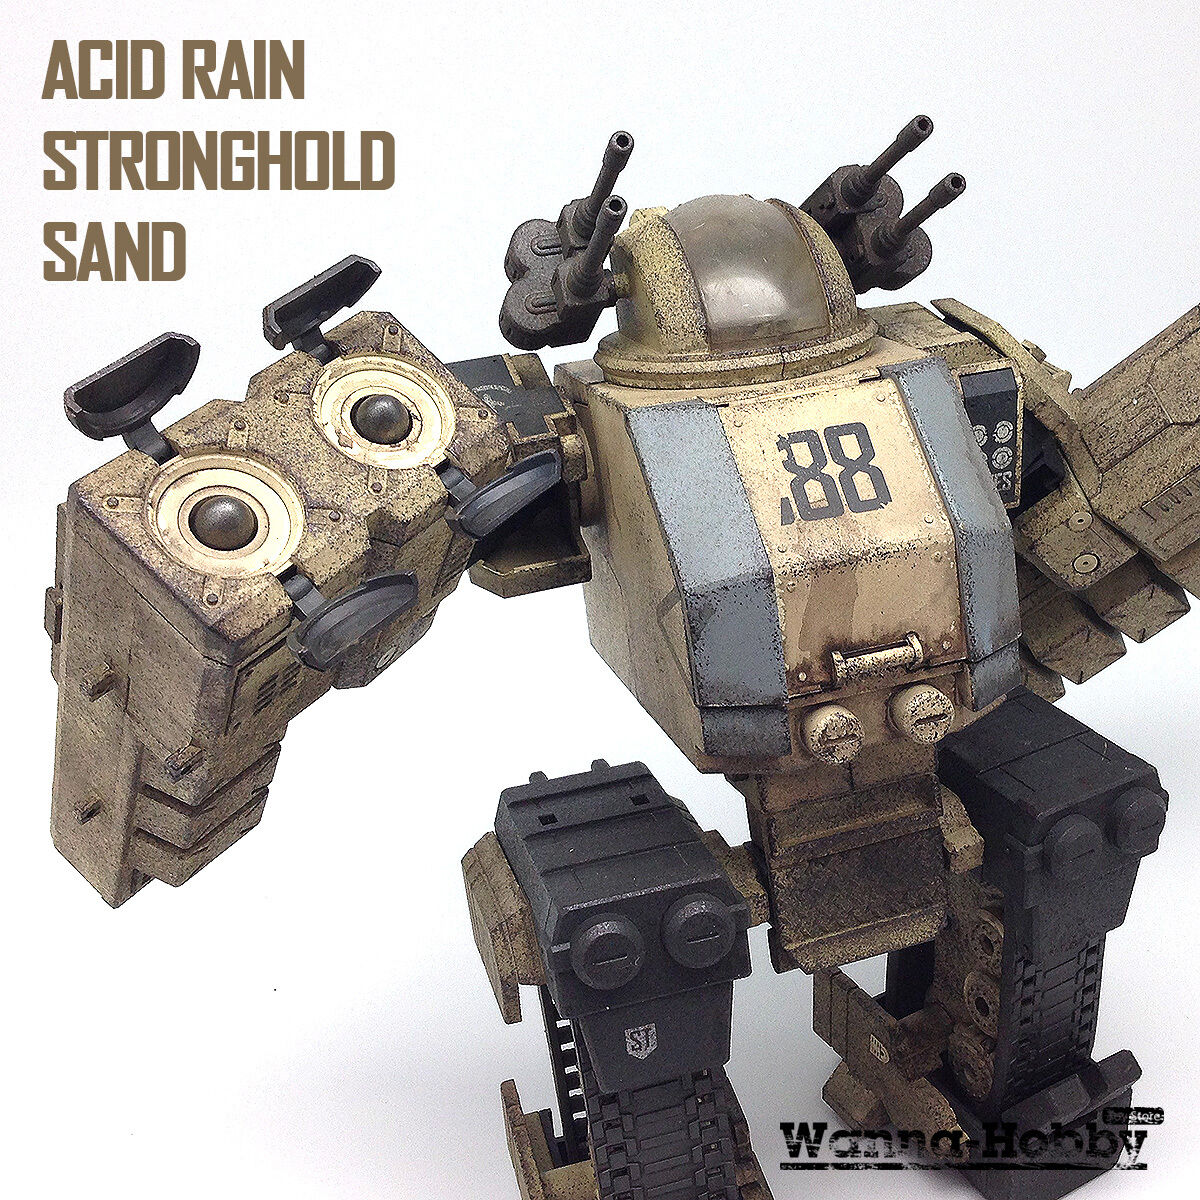 OriToy Acid Acid Acid Rain Sand Stronghold Transforming Mecha Action Vehicle NEW a83d27